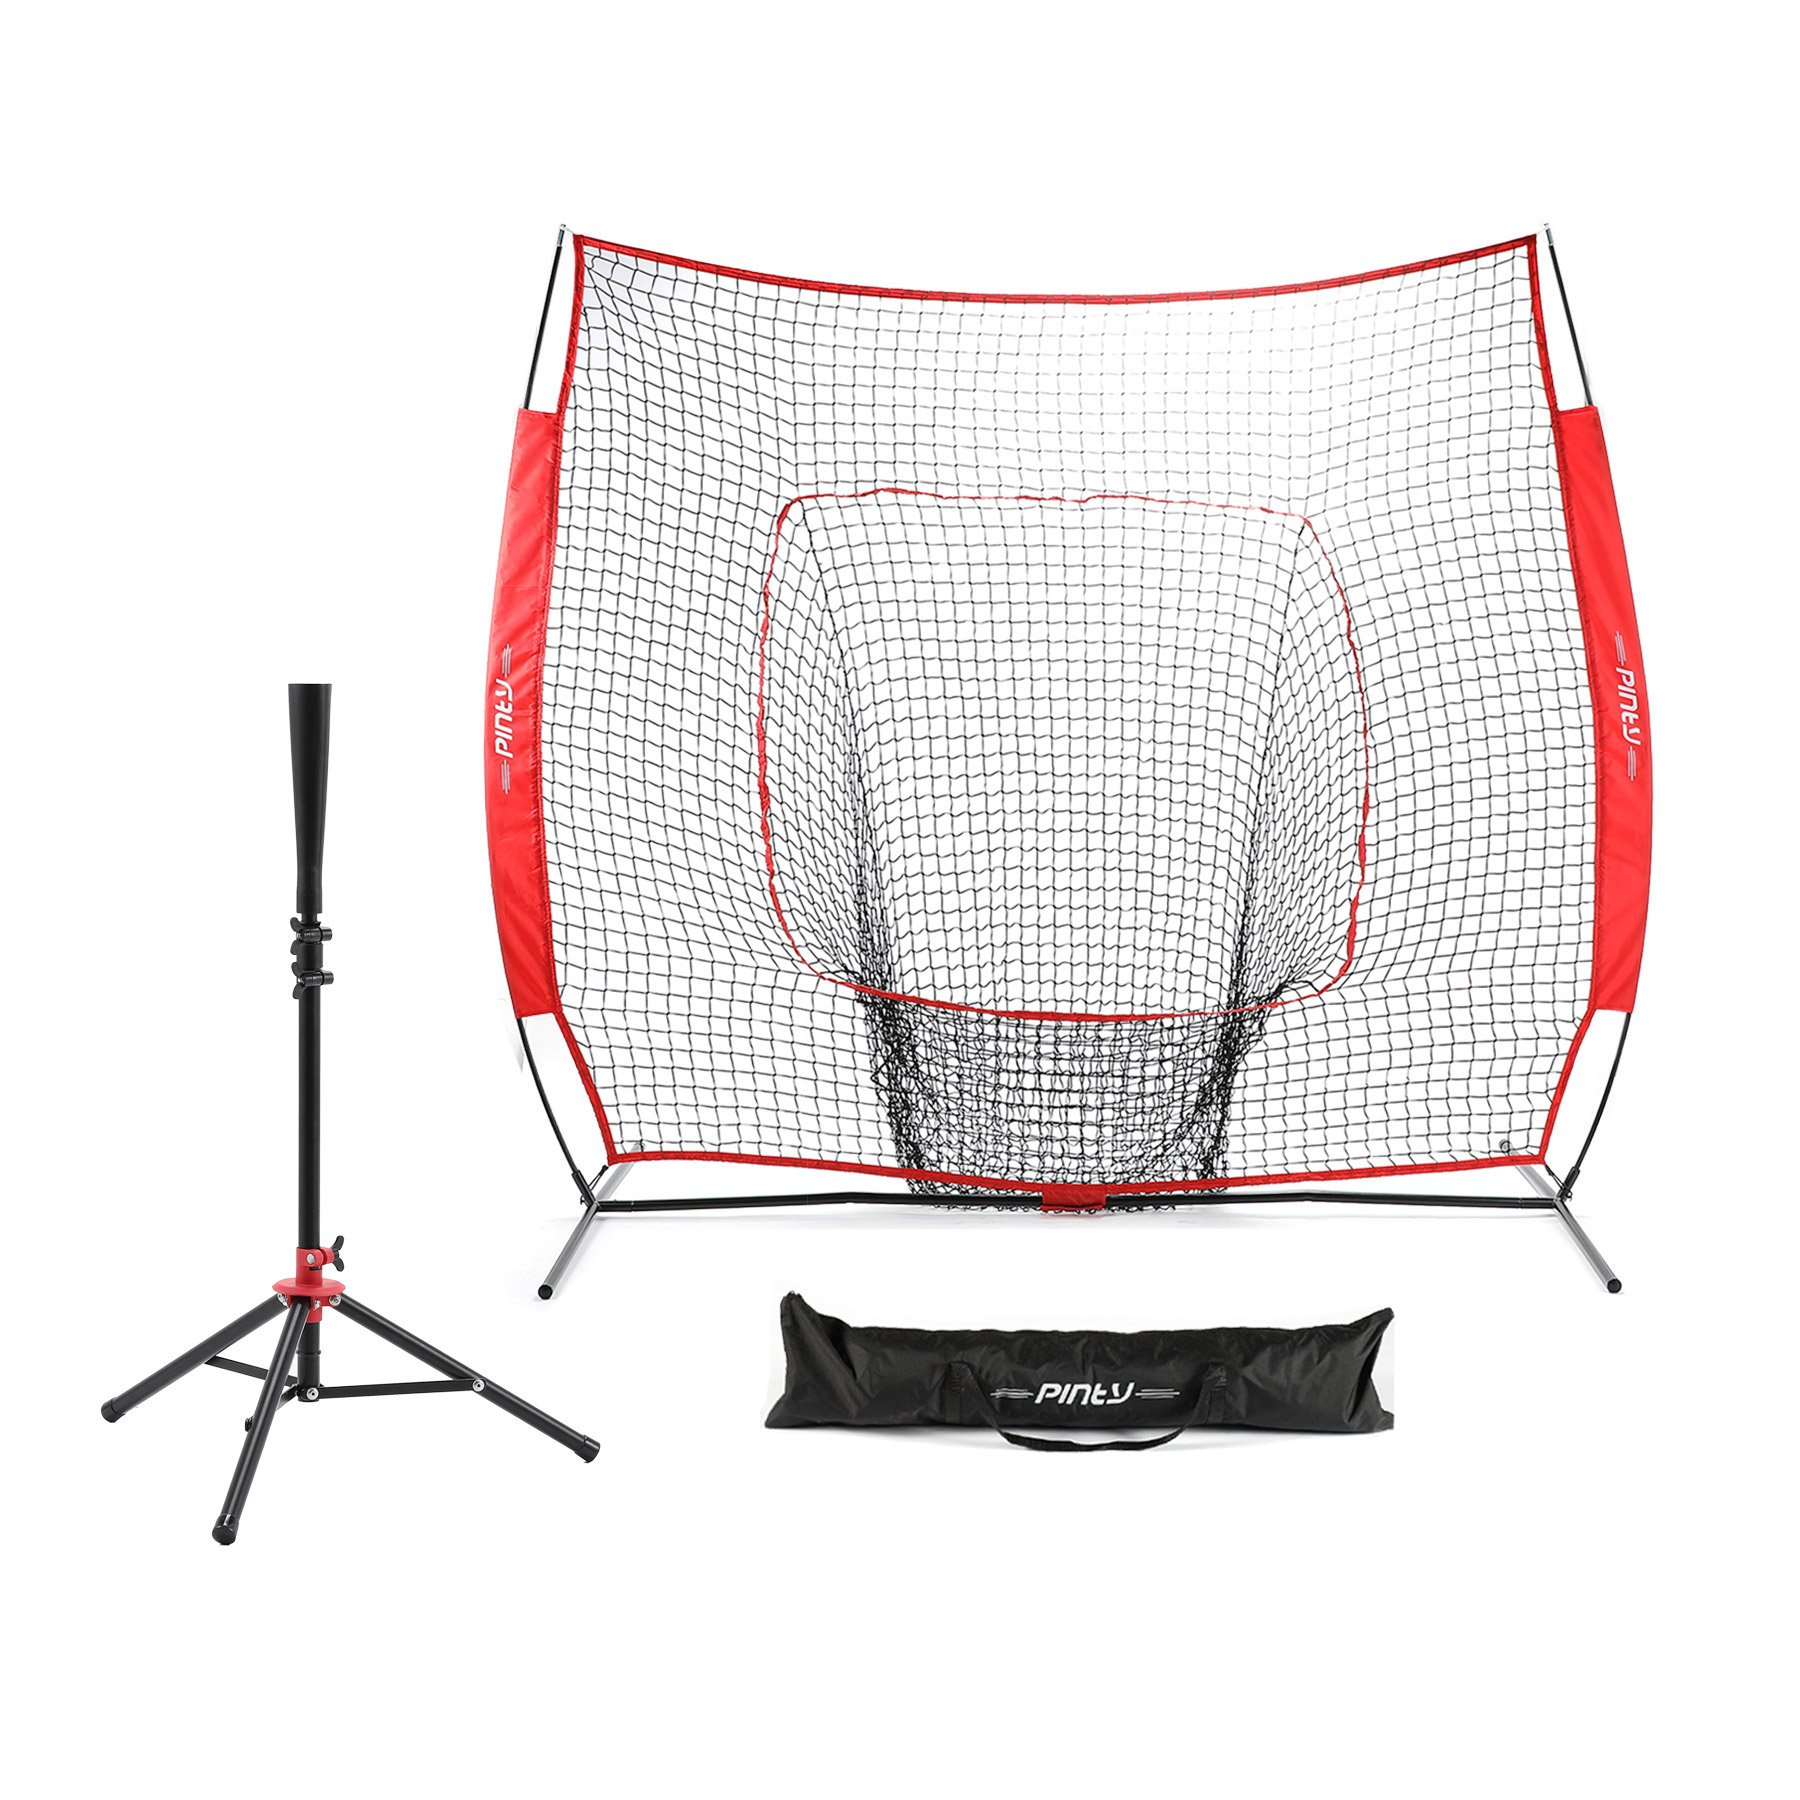 Pinty Baseball and Softball Practice Net 7'×7' Portable Hitting Batting Training Net with Carry Bag & Metal Frame + Baseball Softball Batting Tee (Baseball Net with Batting Tee(Red)) by Pinty